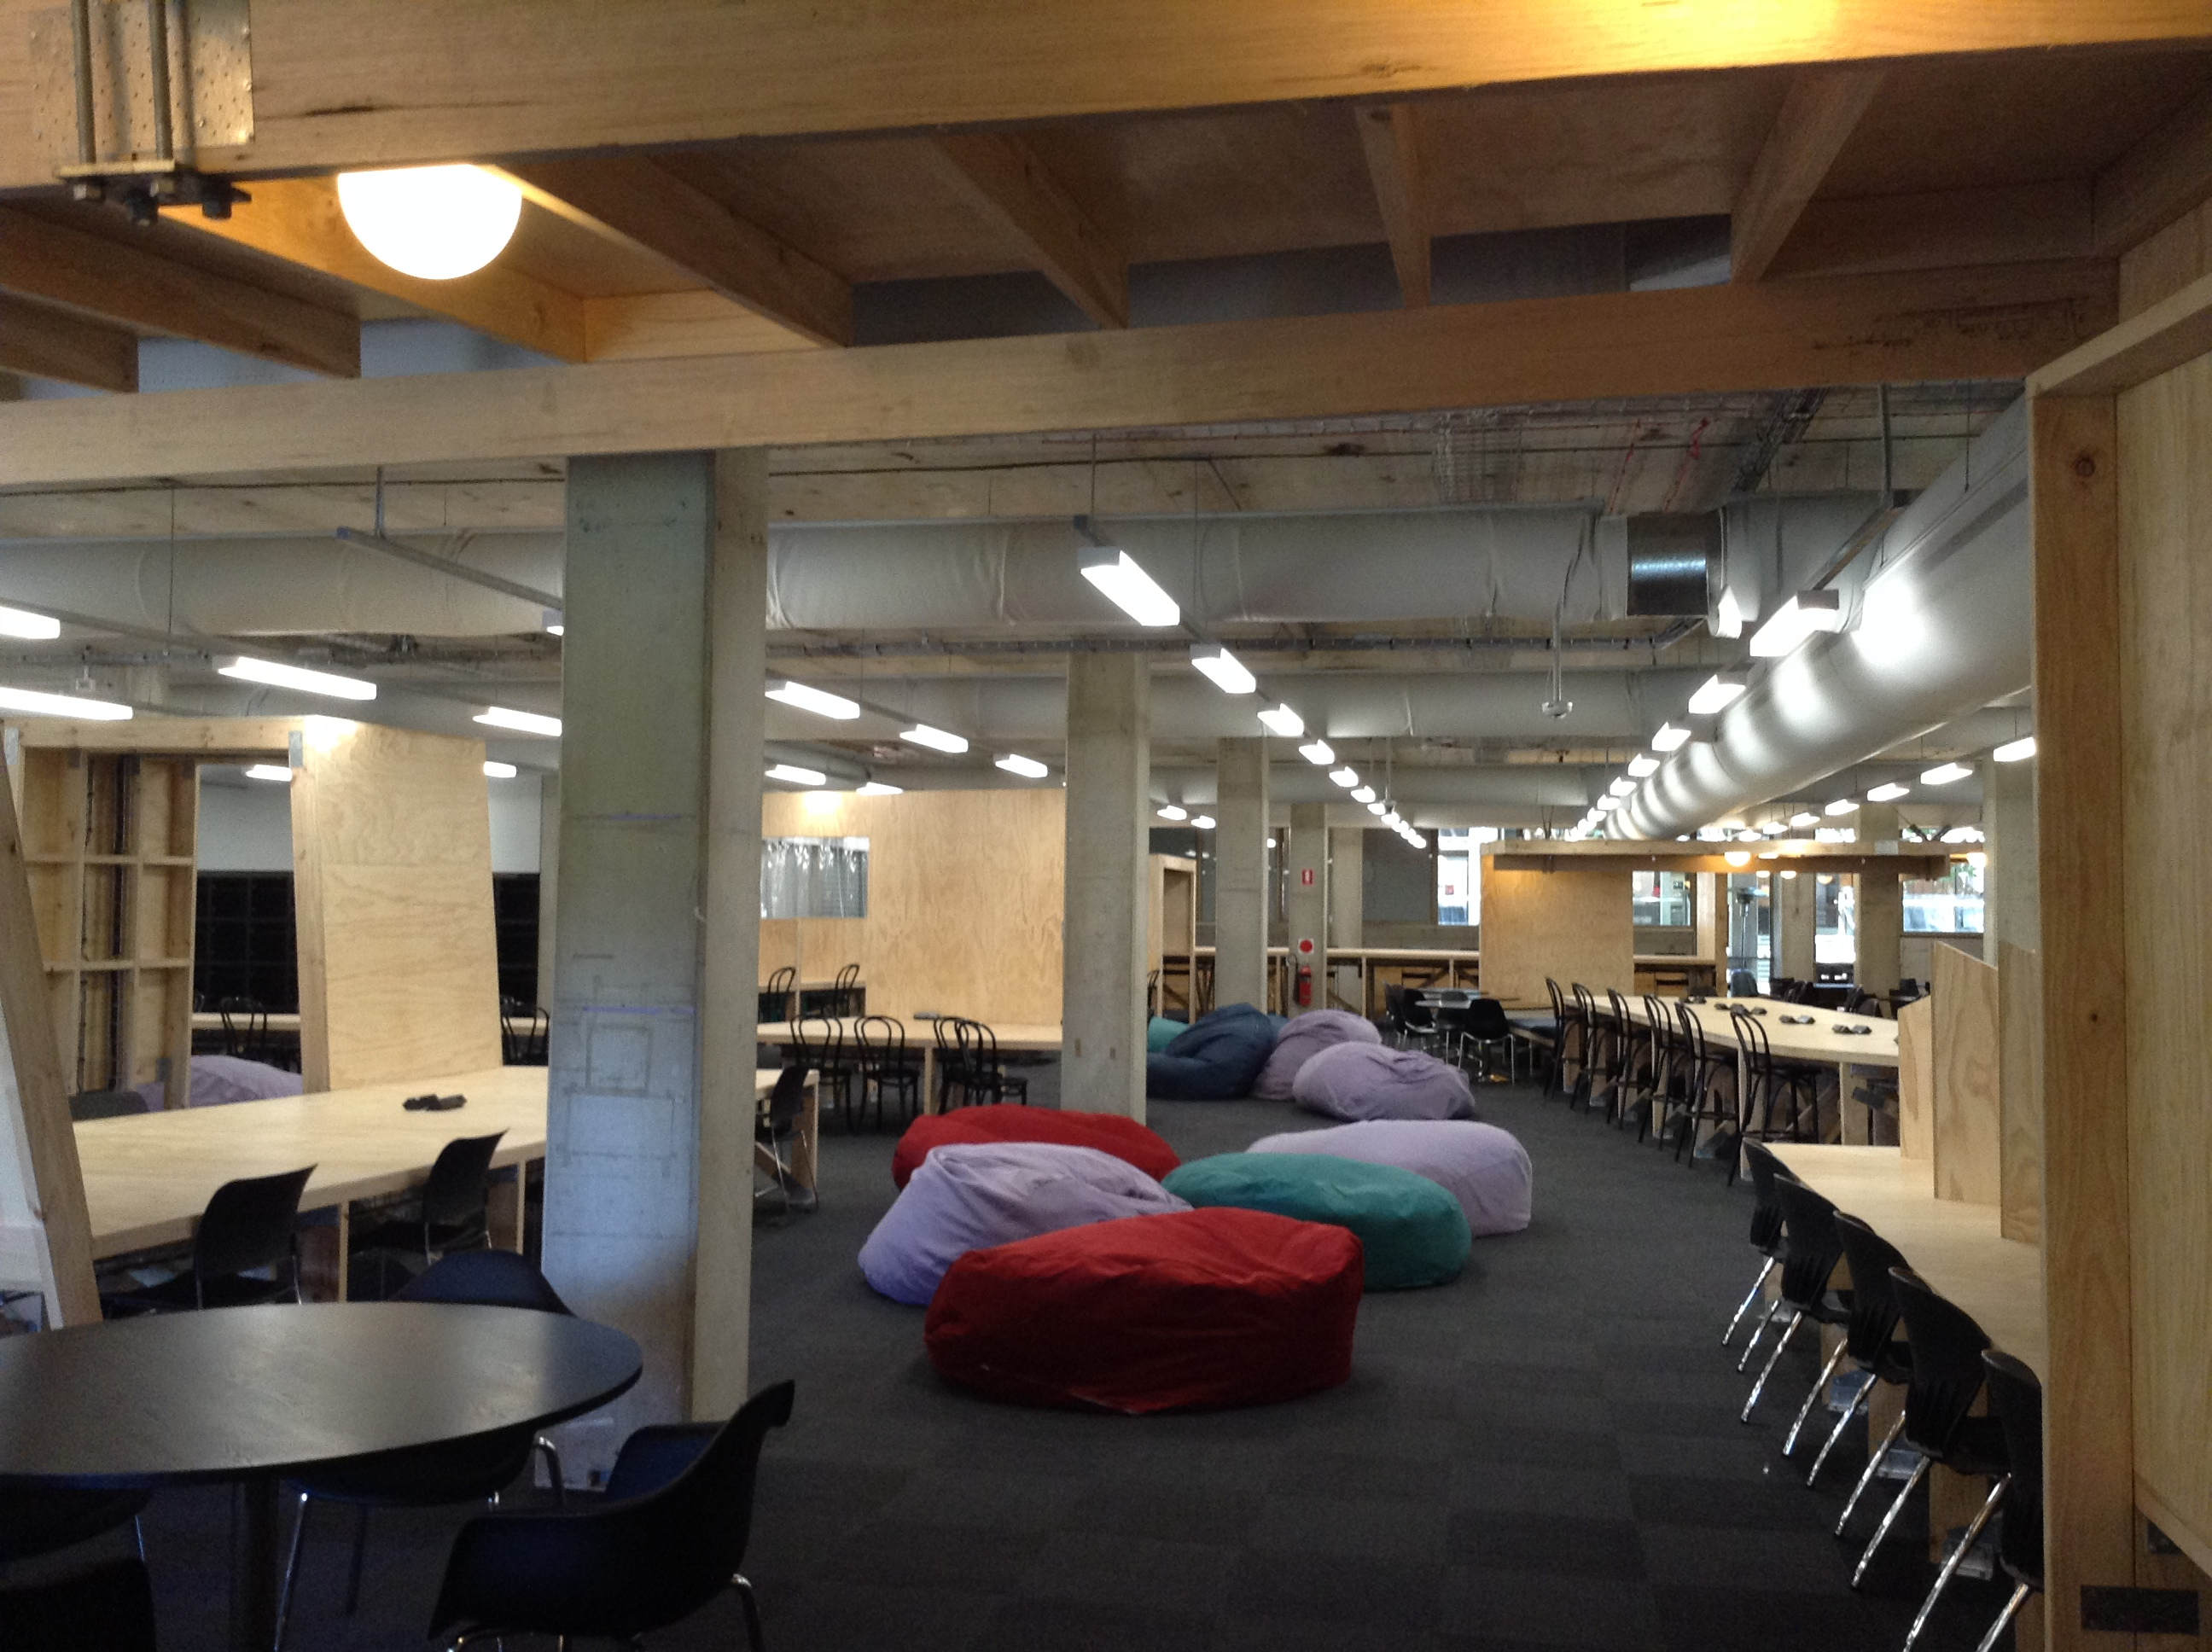 Insight for schools: Trends in university learning space design, big shift from lectures to collaborative learning